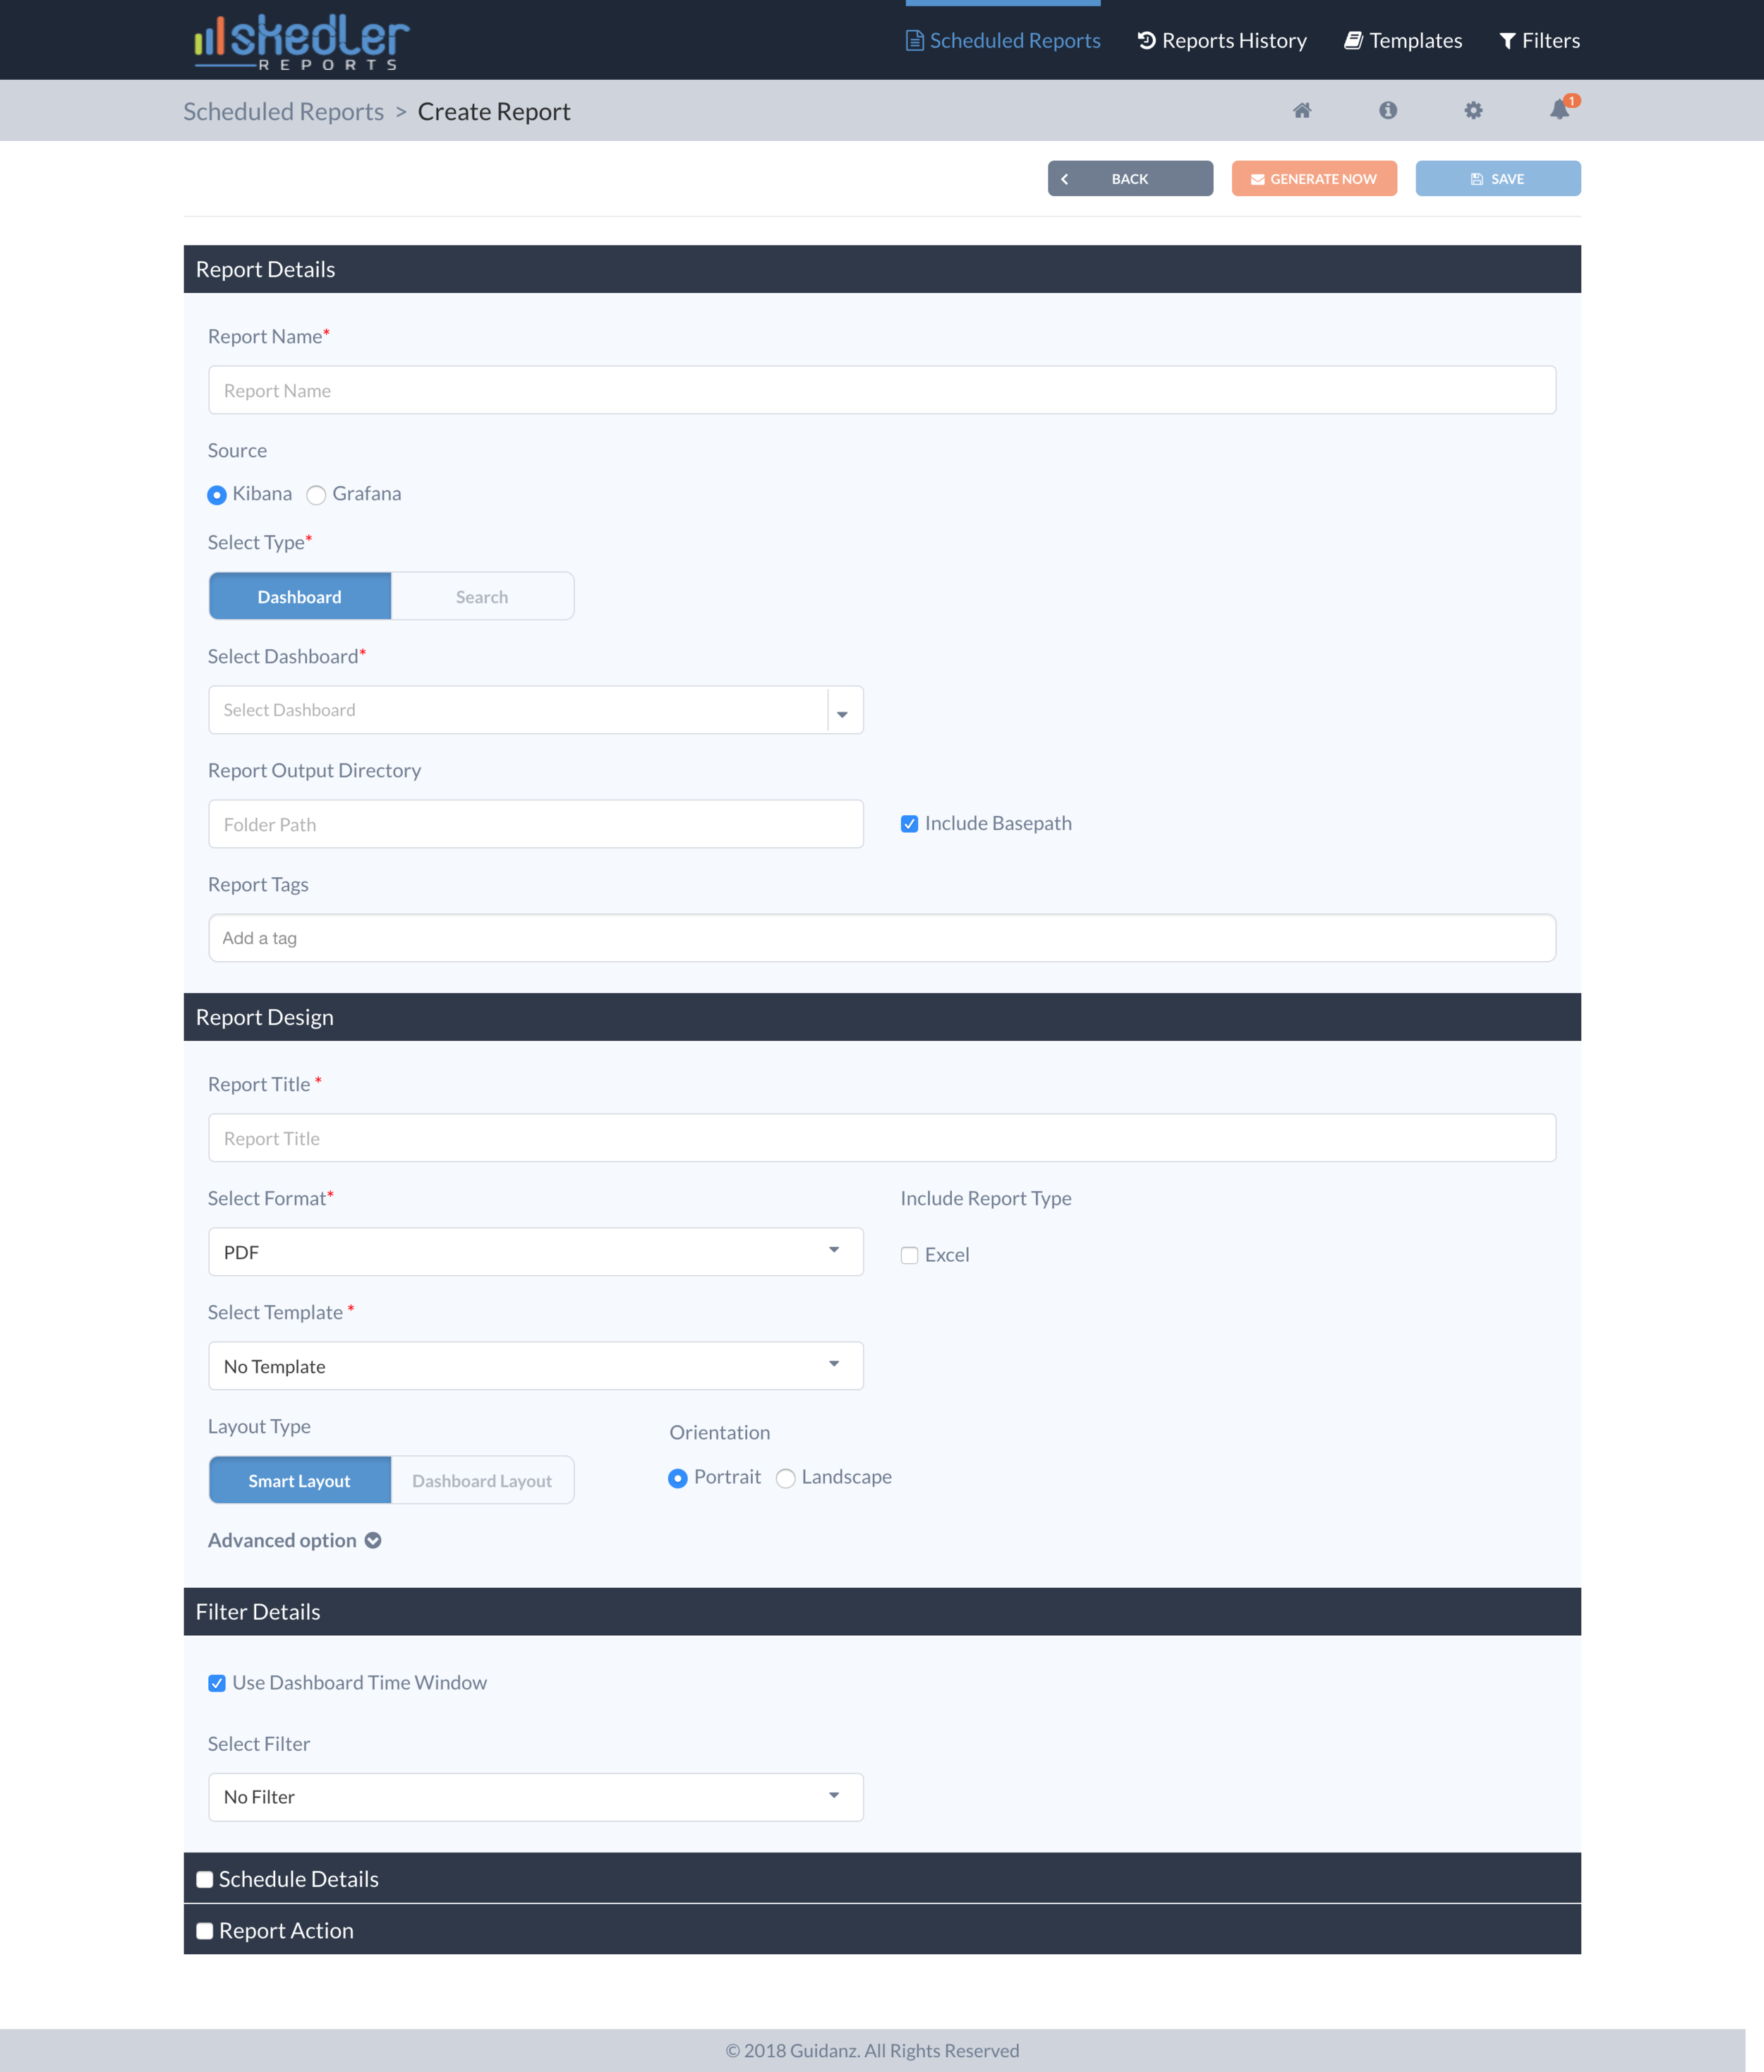 The create report screen offered all input field at once, which felt overwhelming and doesn't provide any guidance. The last two sections were hidden by default without a clear reason. Each section is a major step in creating a report, which deserves an undivided attention from the user.